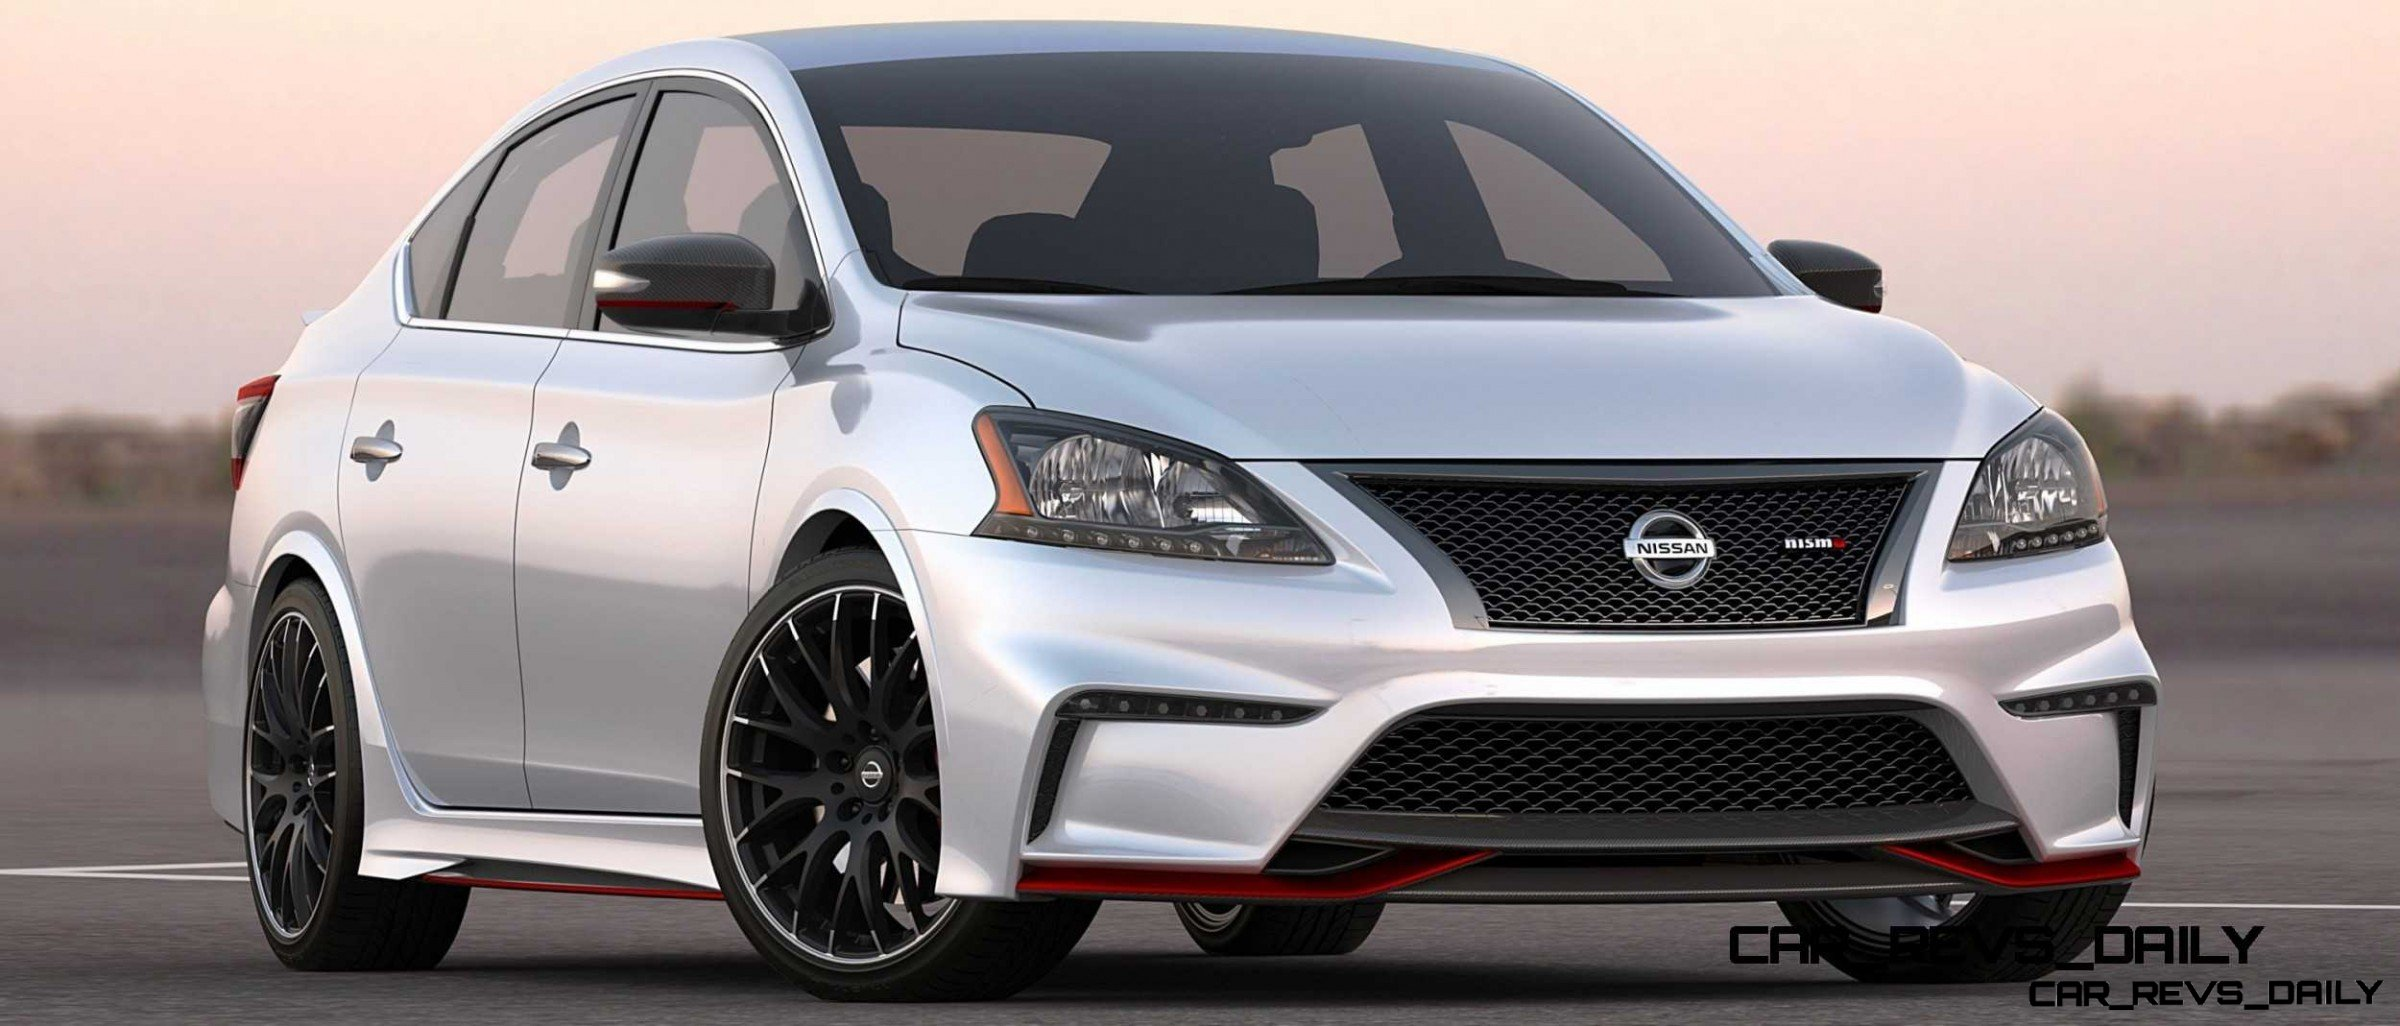 Nissan Sentra NISMO - Now This Is A Sport Compact